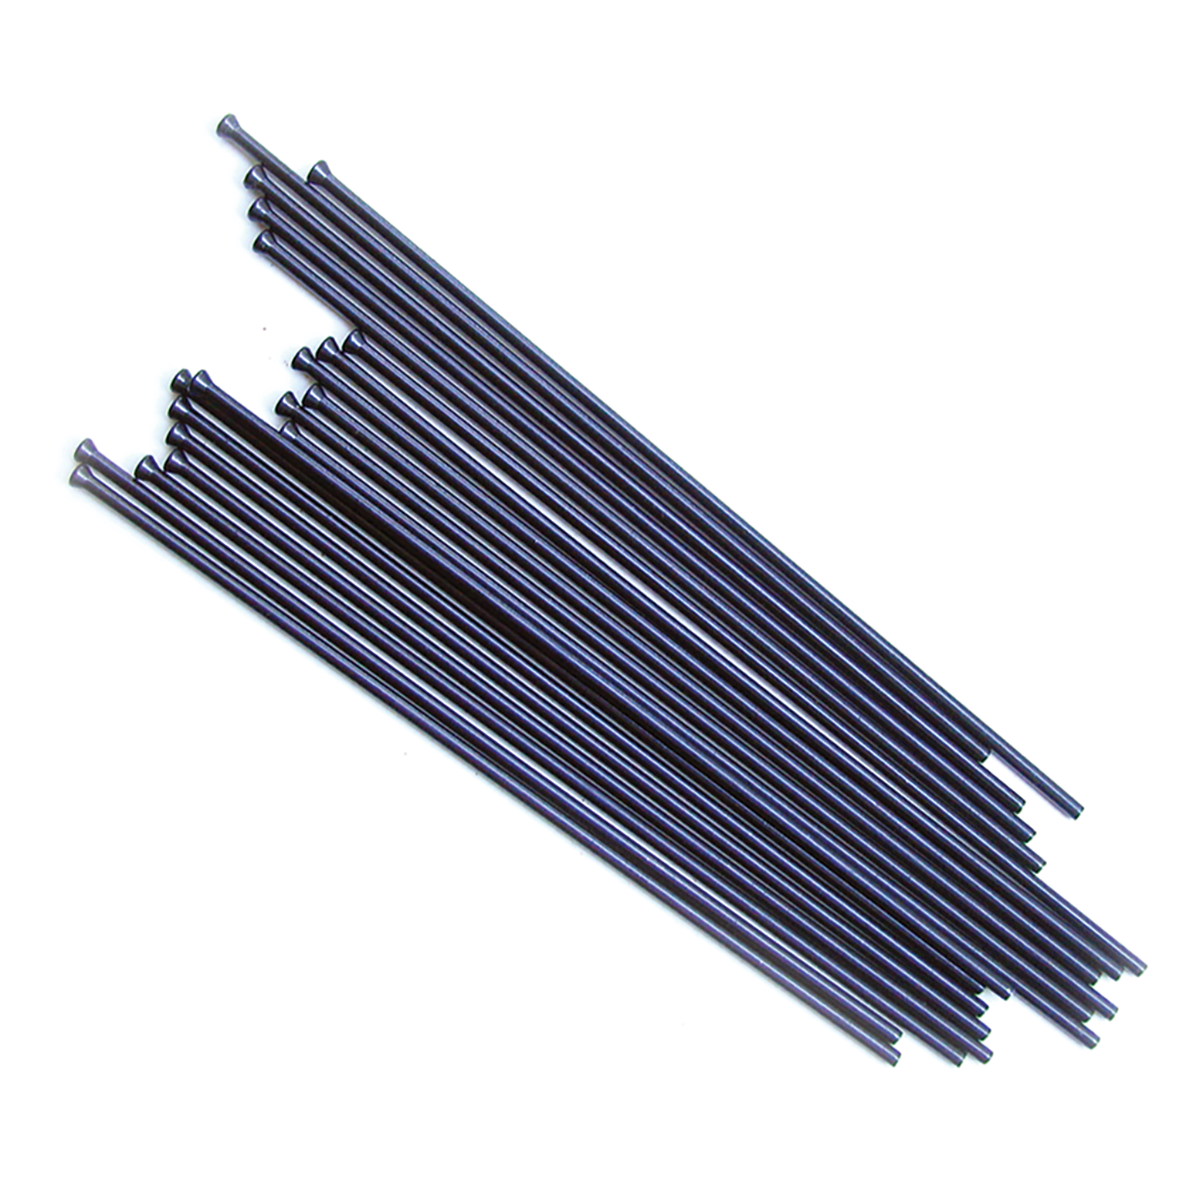 Set of 19 1/8-In Wide by 7-in Long Extended Steel Needles